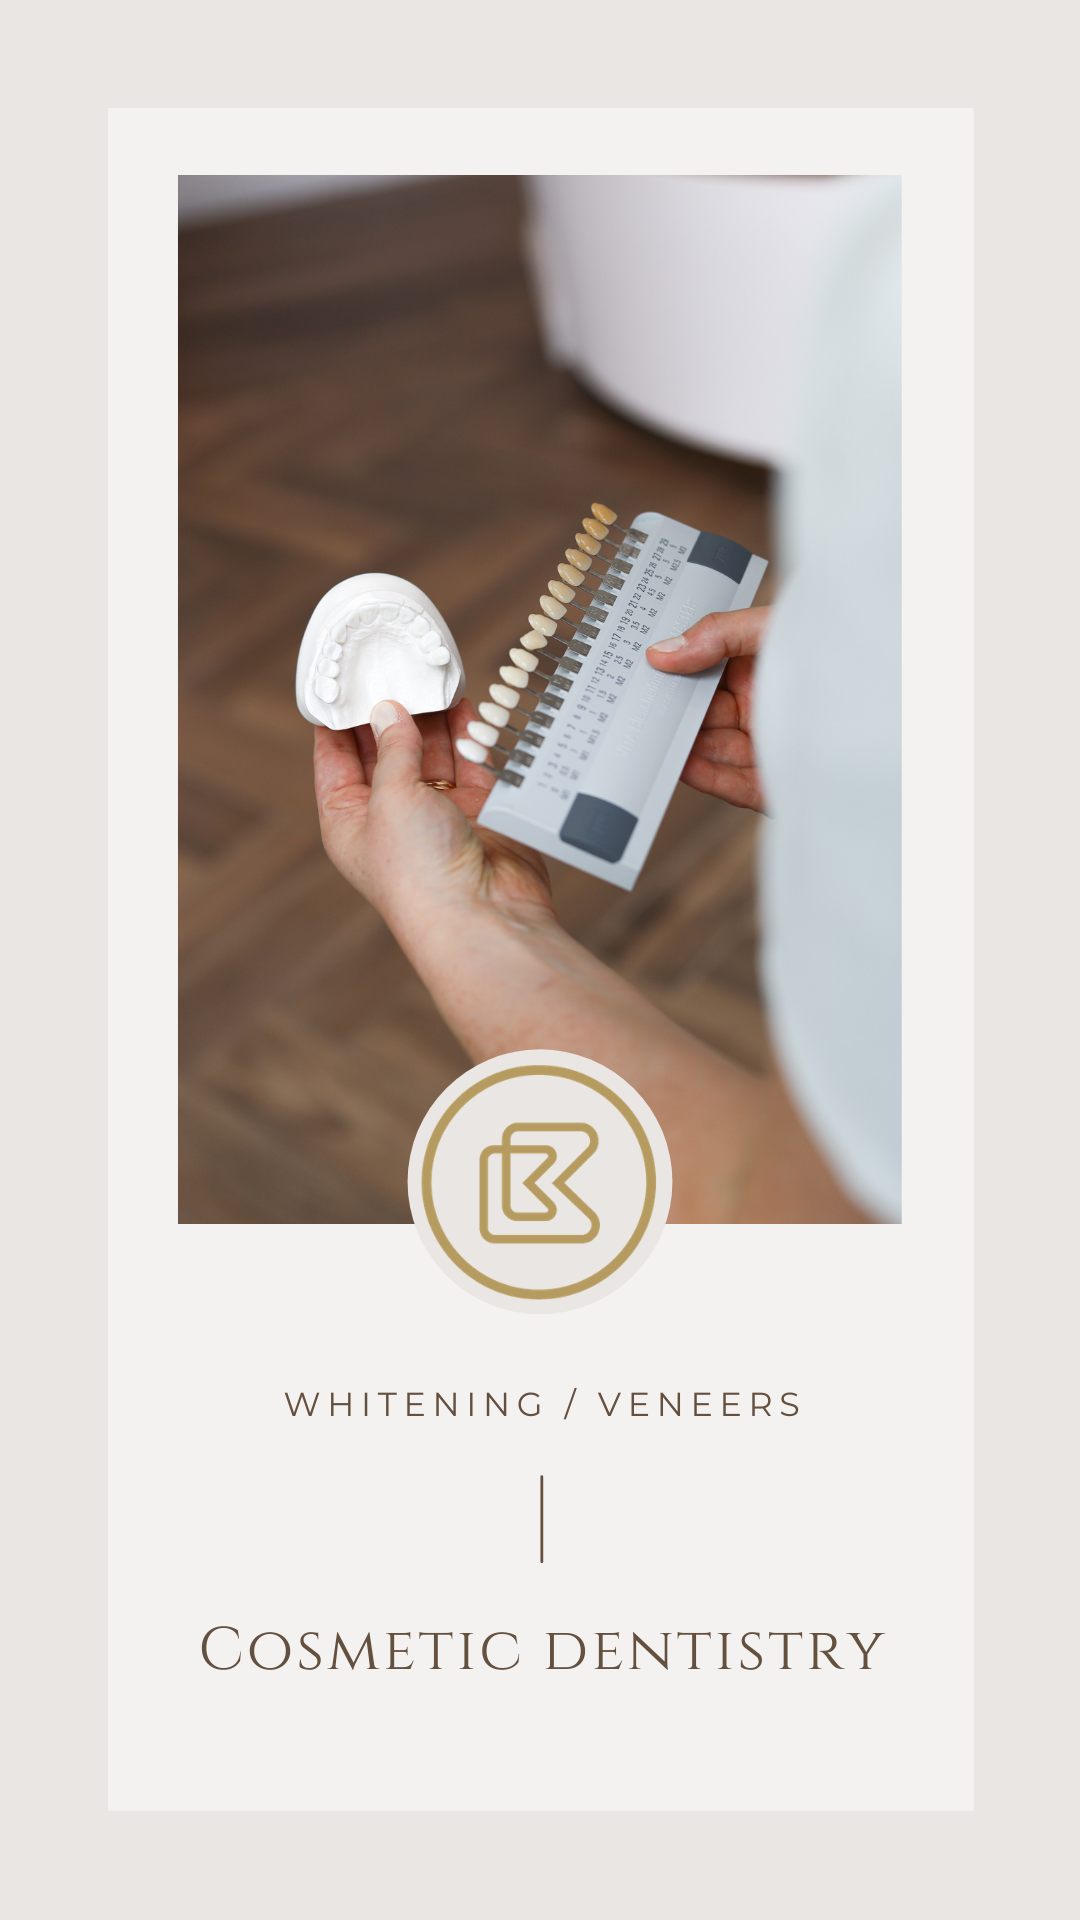 For chipped and discoloured teeth, teeth whitening in combination with non-invasive bonding or minimally-prepped veneers are great options for enhancing your natural smile | Bitehaus Toronto Dental Clinic